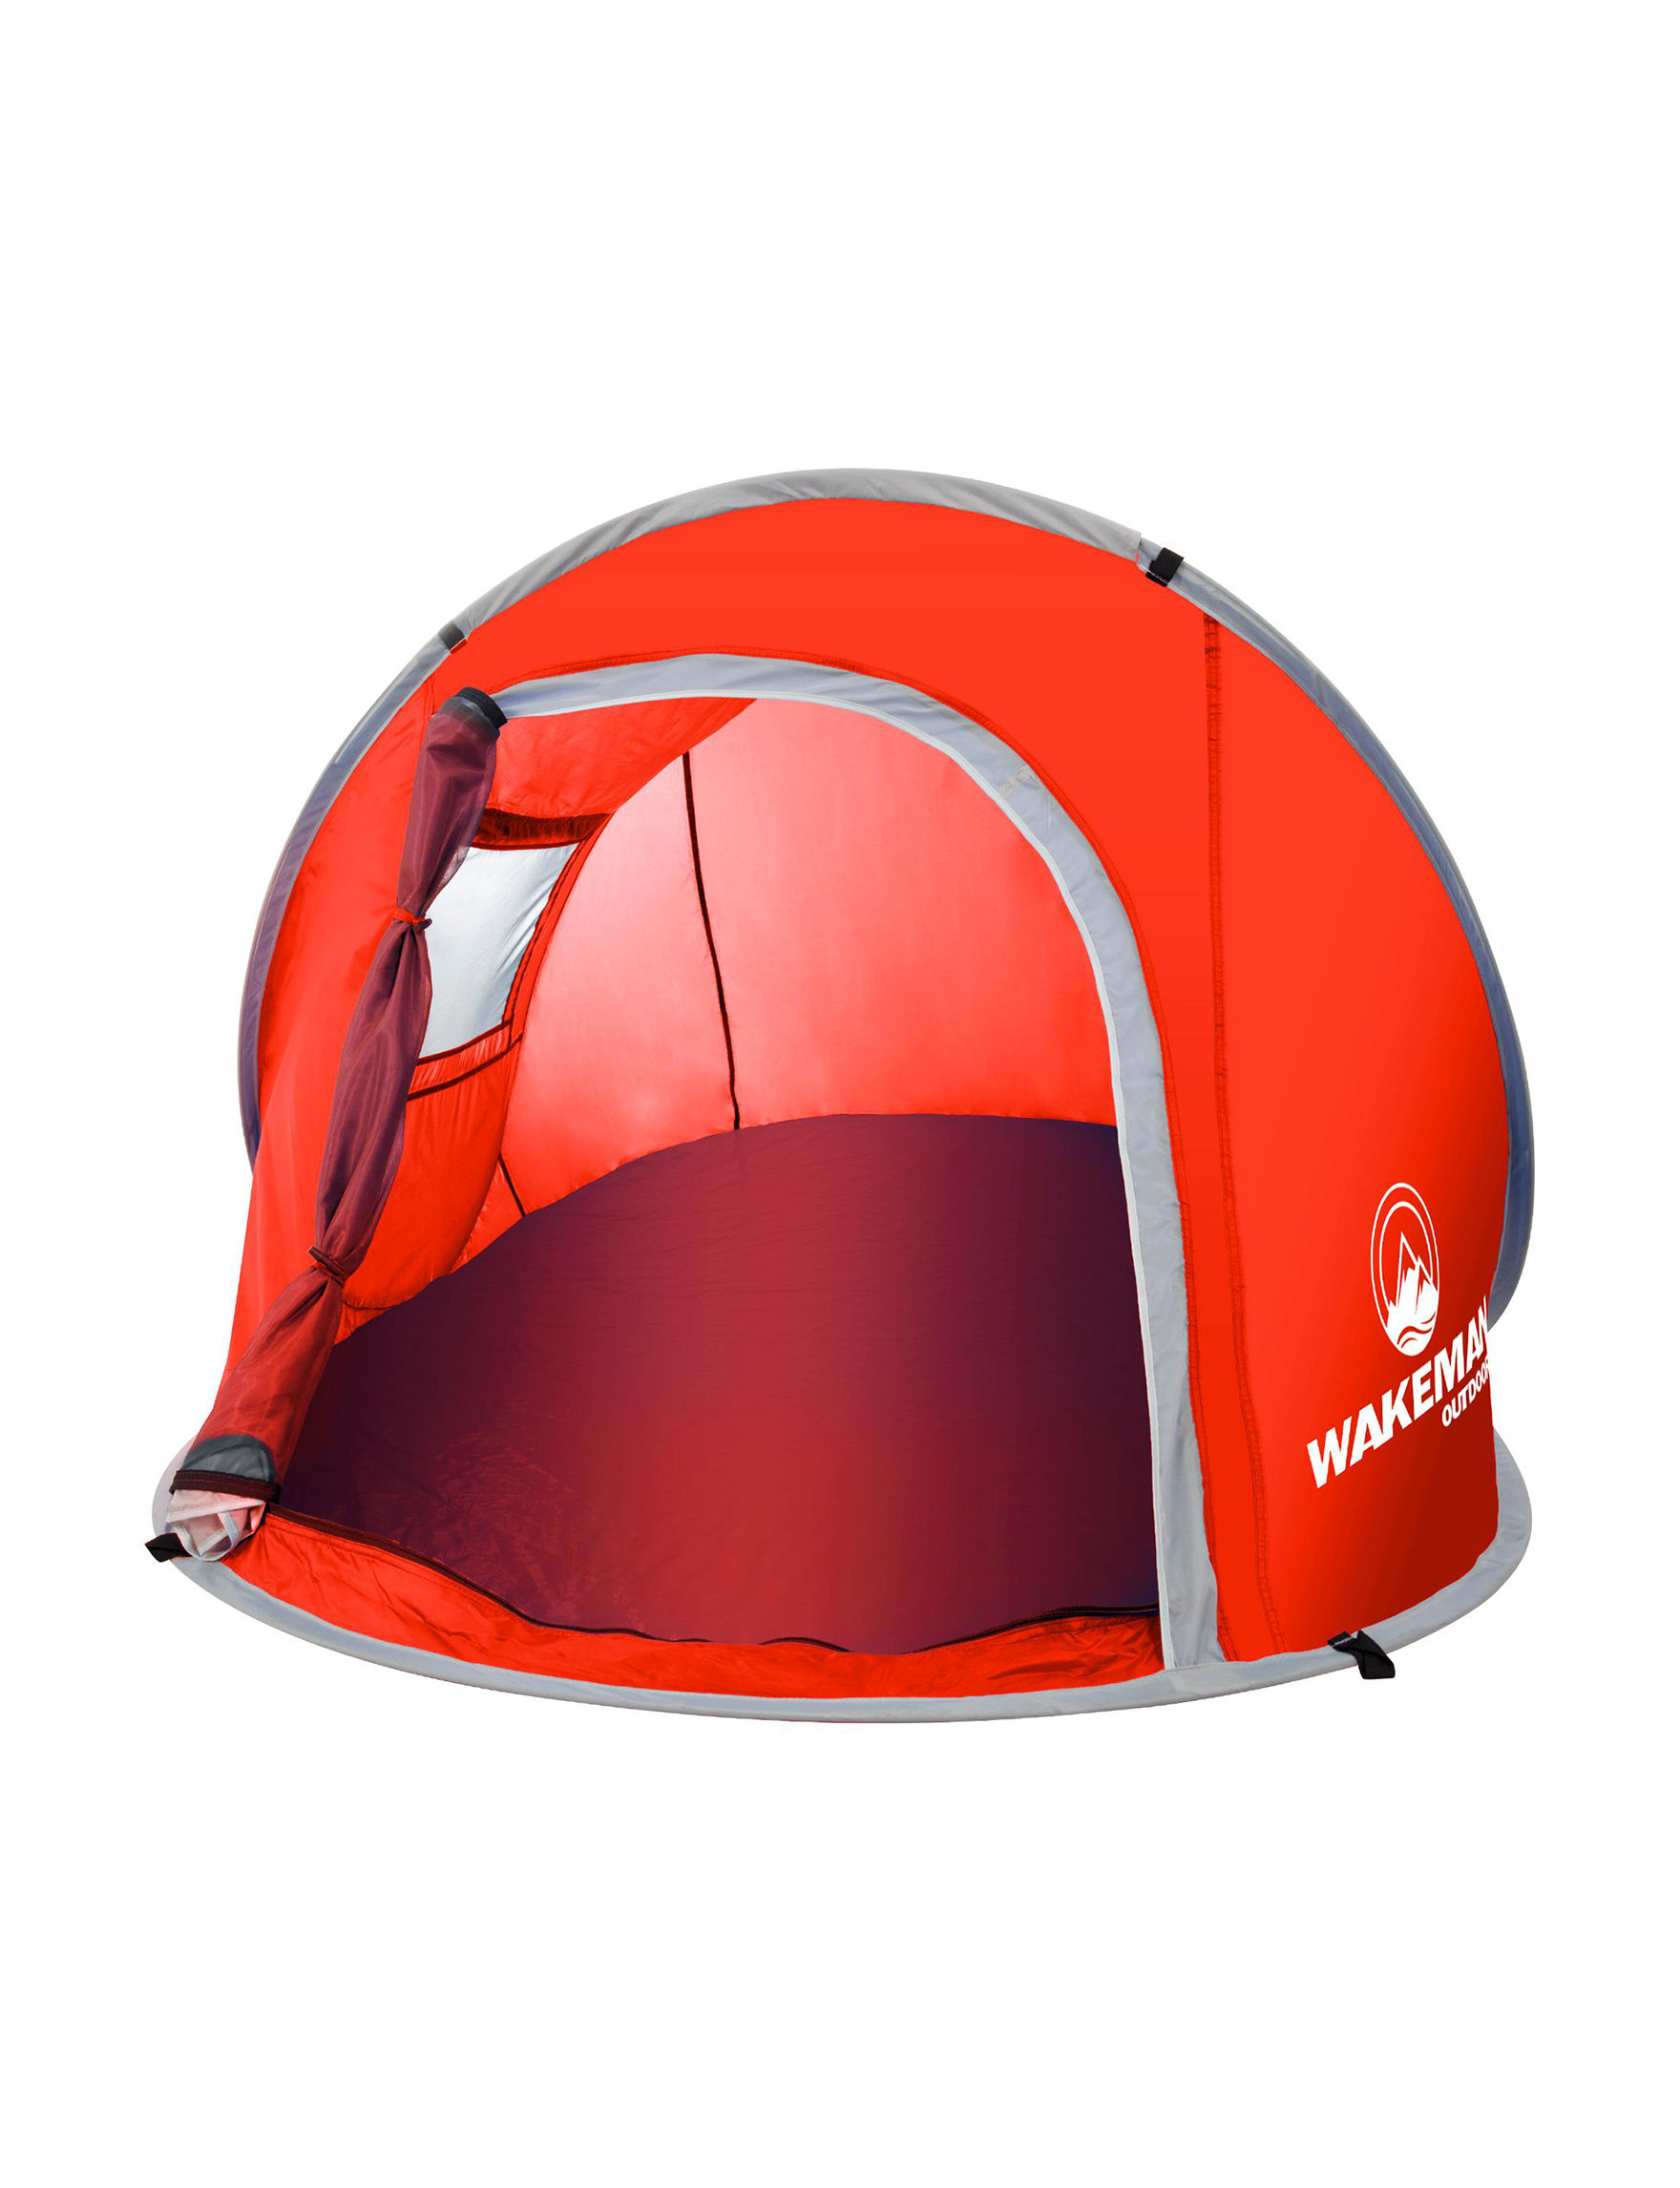 Wakeman Red Tents & Canopies Camping & Outdoor Gear